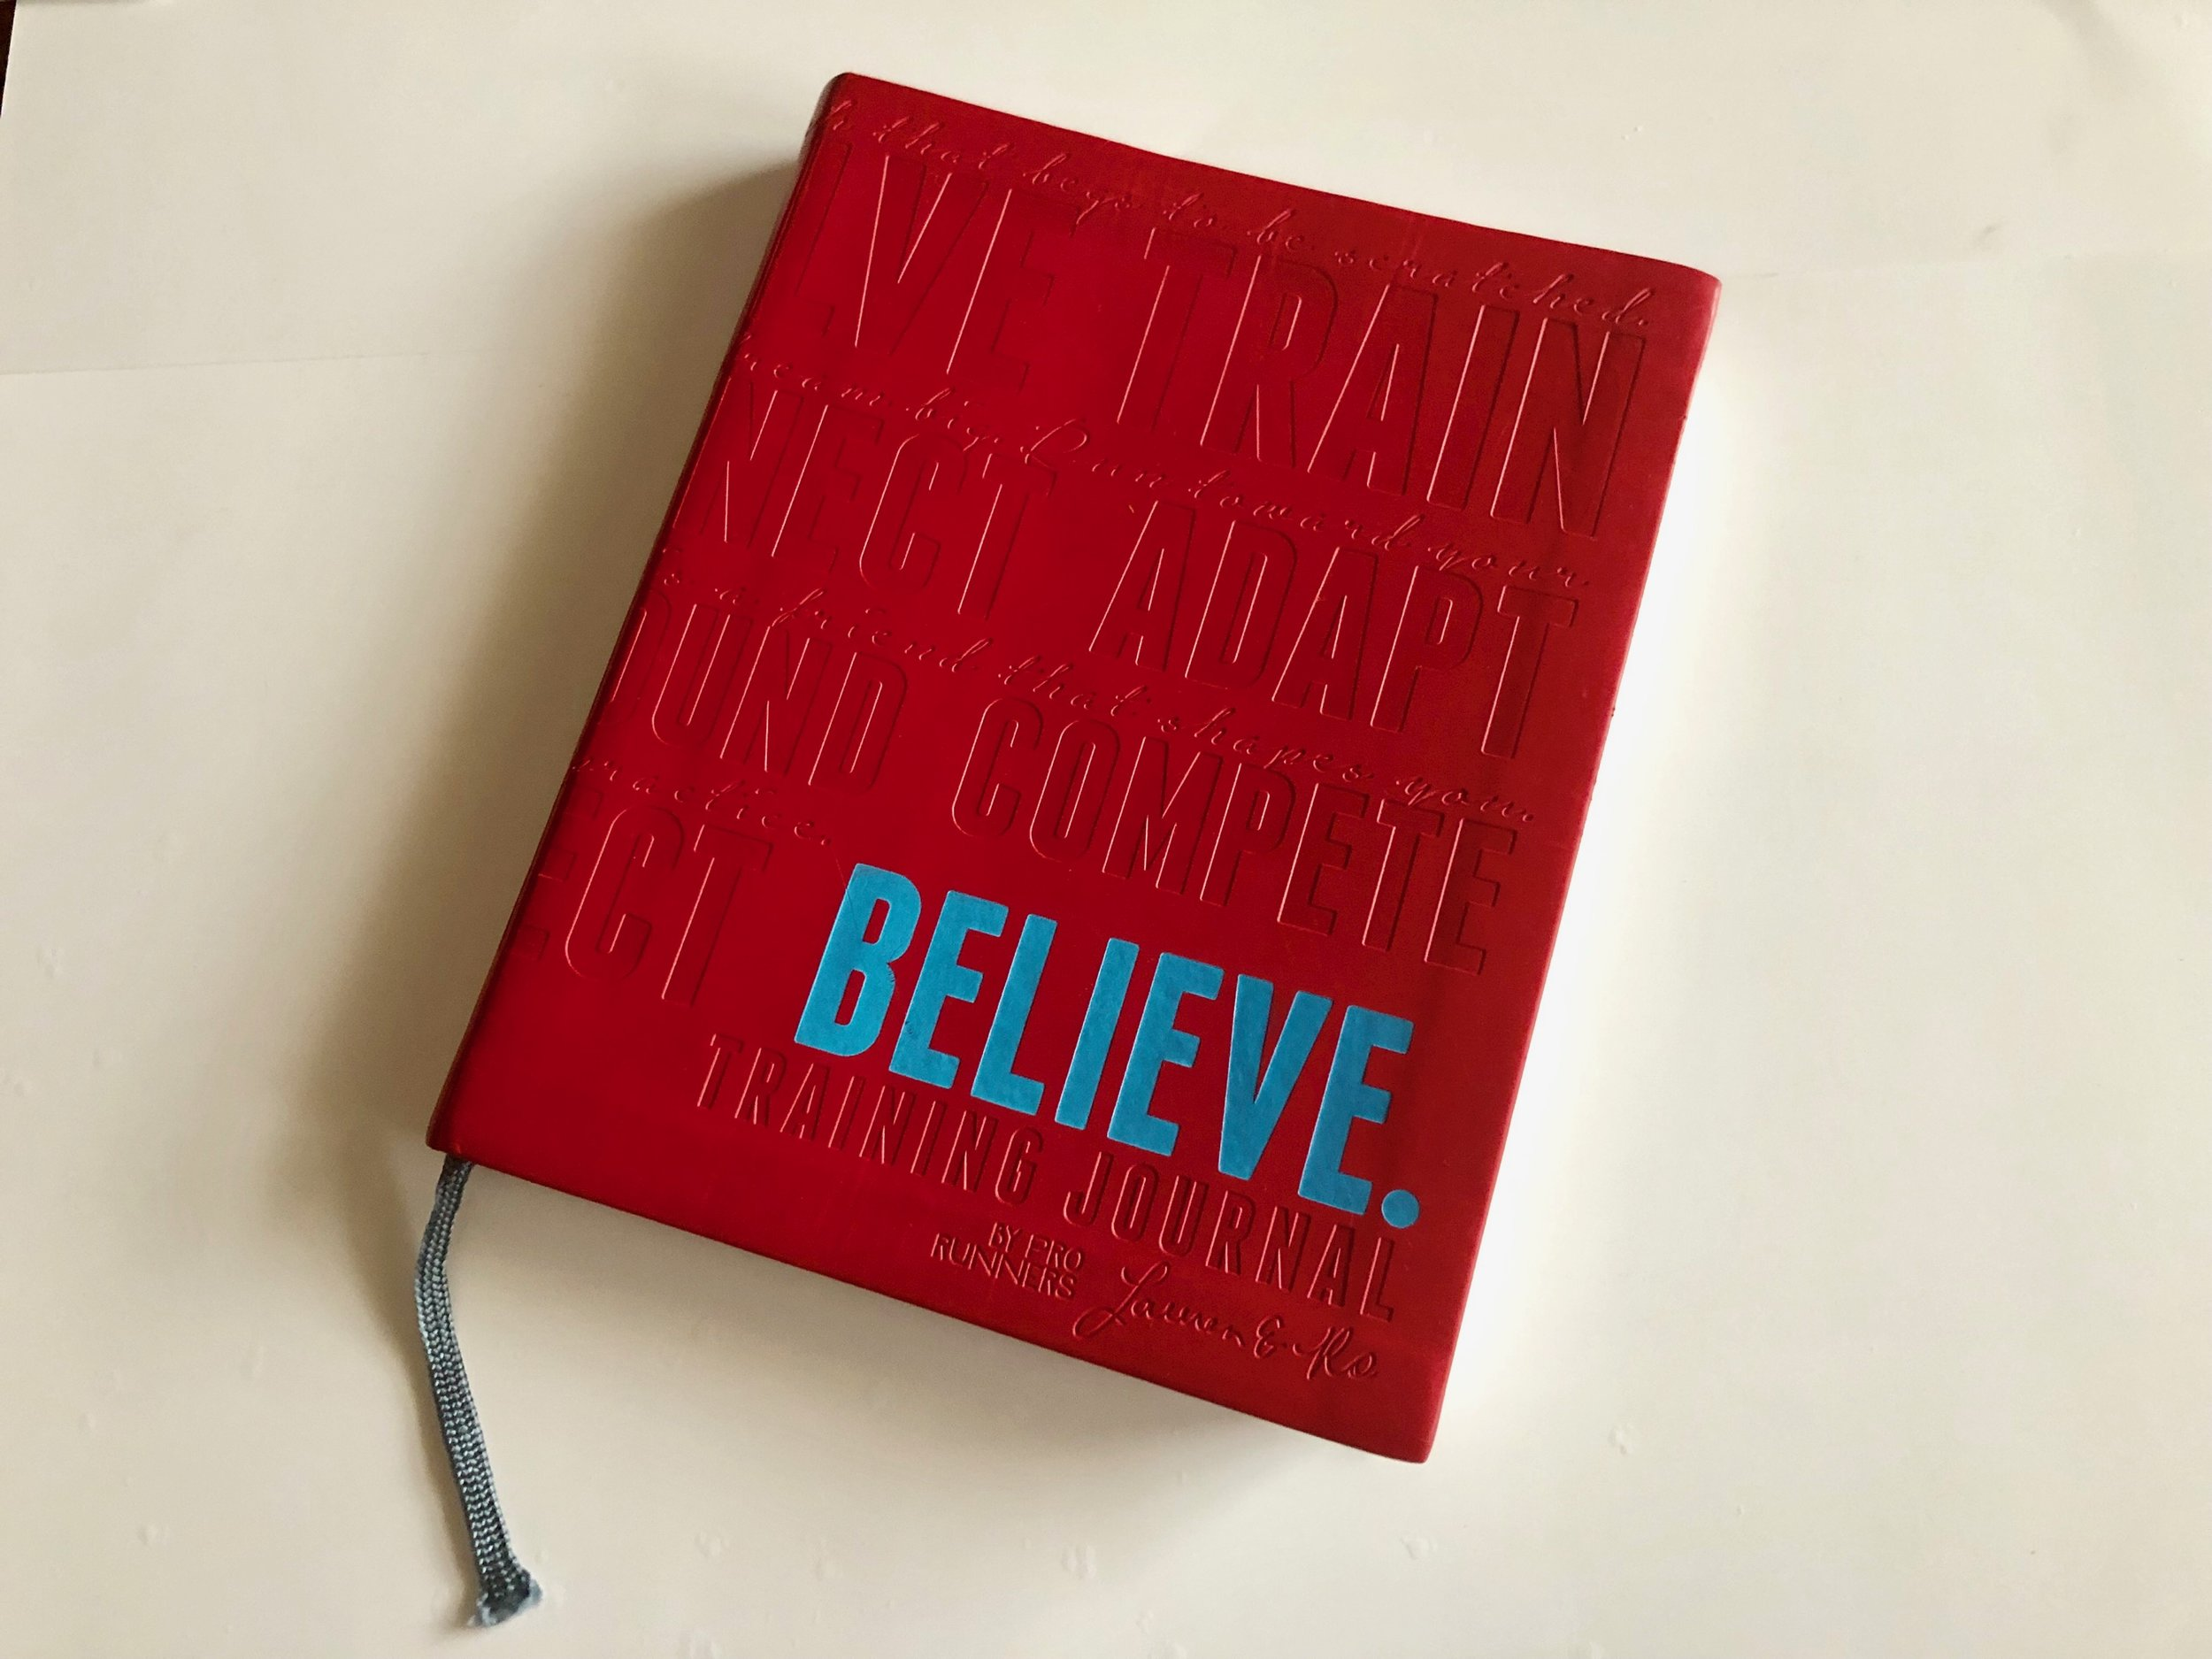 Jennifer's copy of the  Believe Training Journal